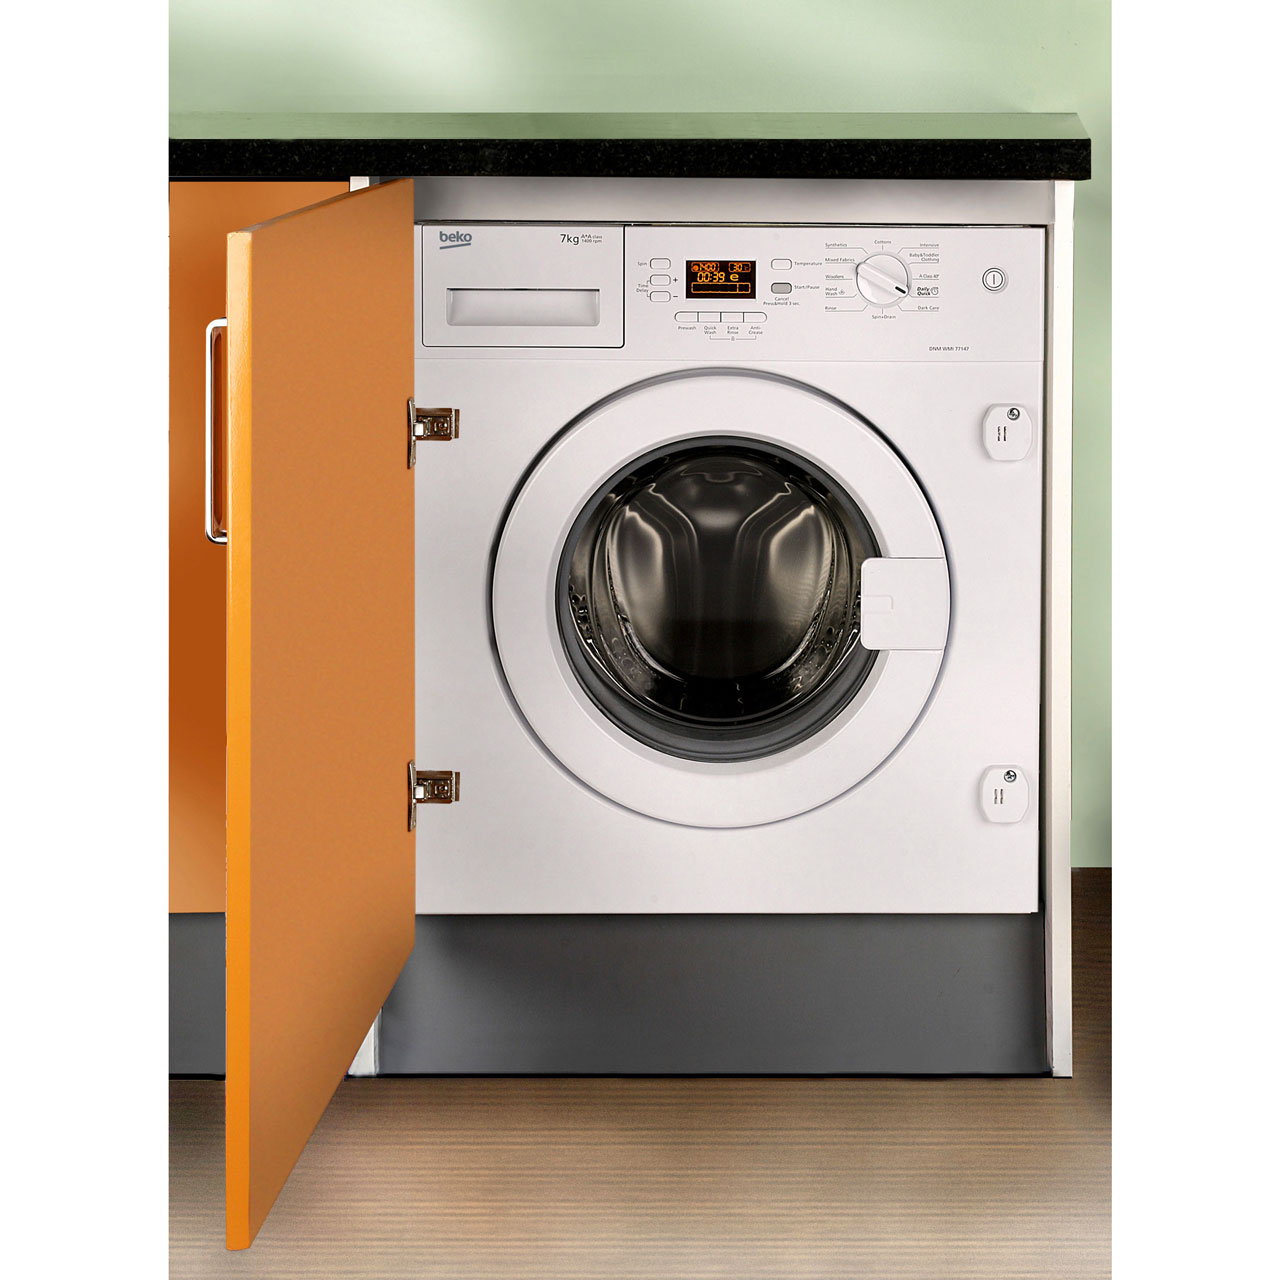 Beko WMI71641 Integrated Washing Machine in White